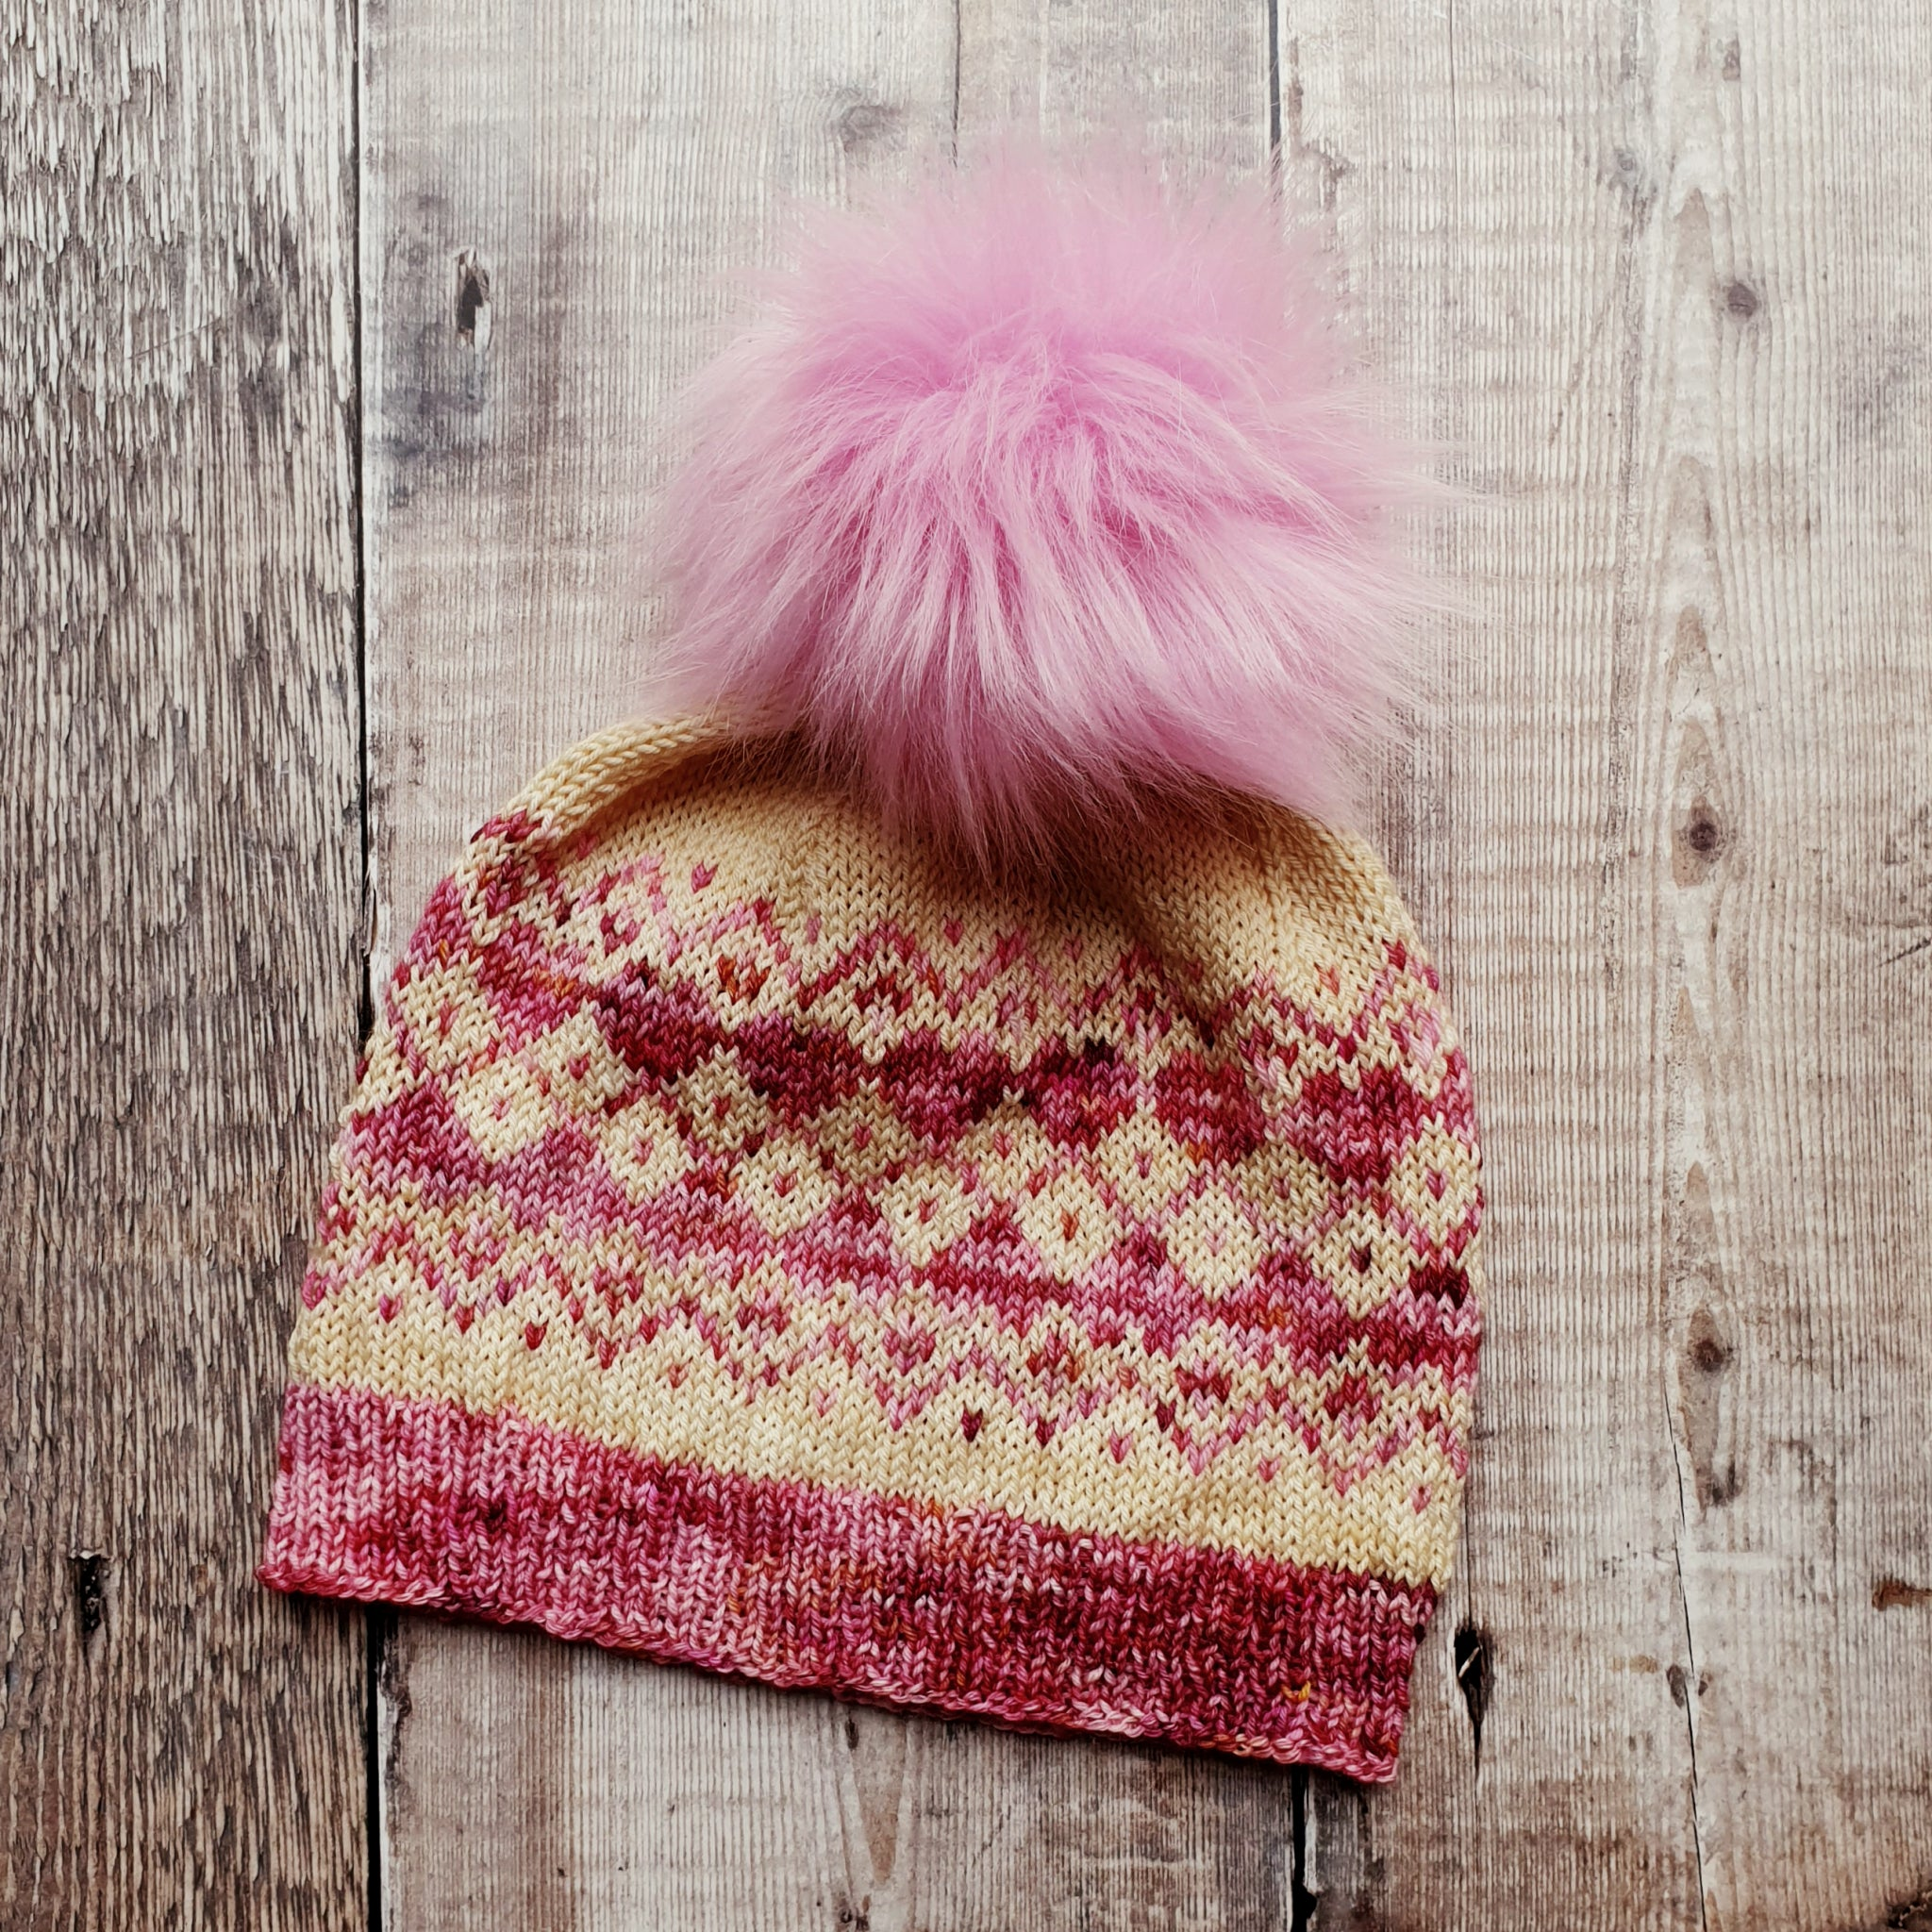 V is Still for Valentine Hat Knitting Pattern - HFS Original - Downloadable PDF